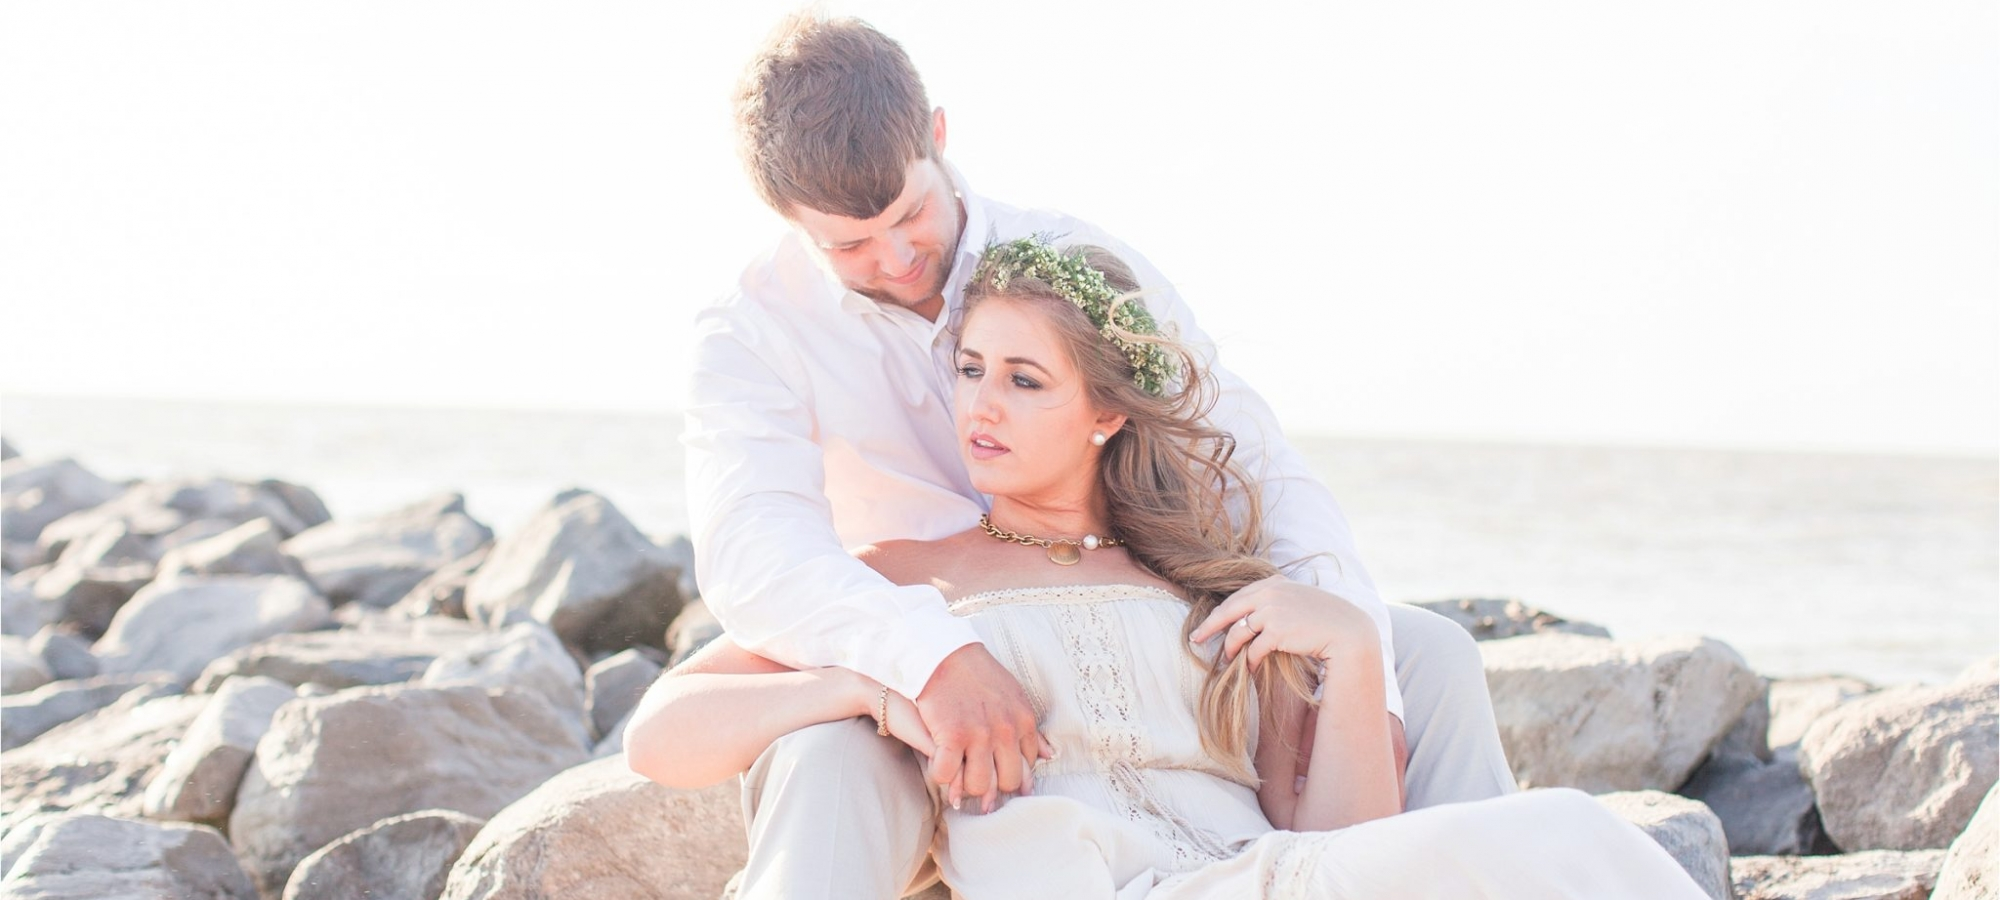 Engagement-Photos-The Grand-Point-Clear-Alabama-MaryCatherine-Chase_0038